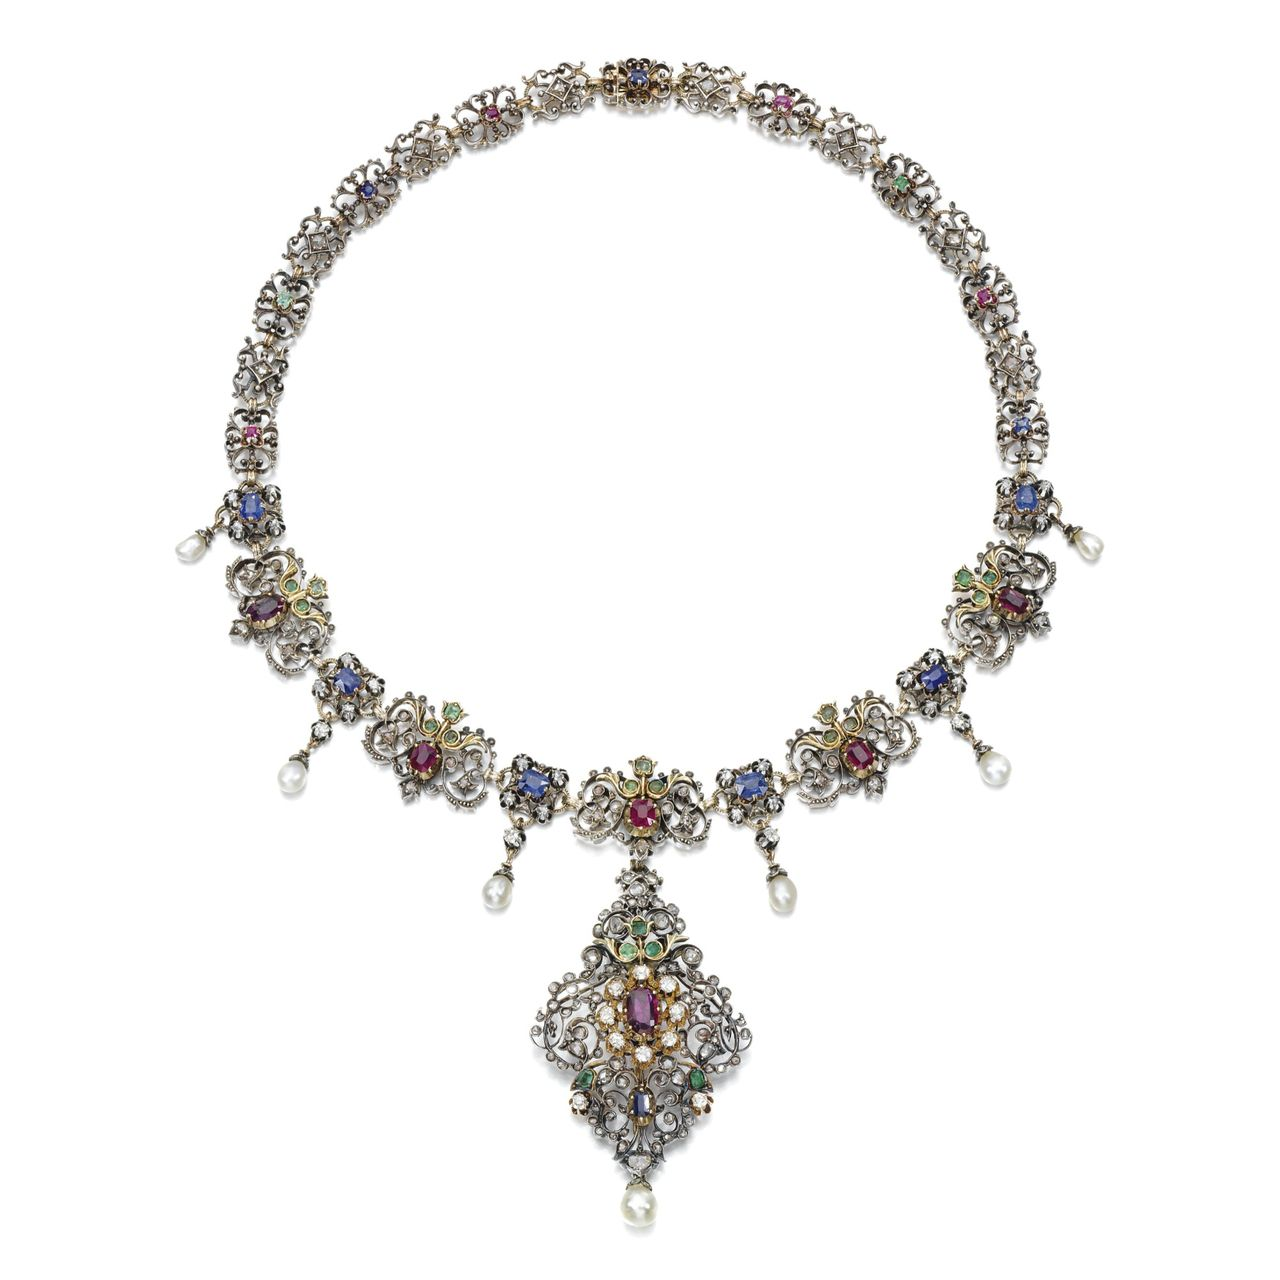 Necklace, 1880s